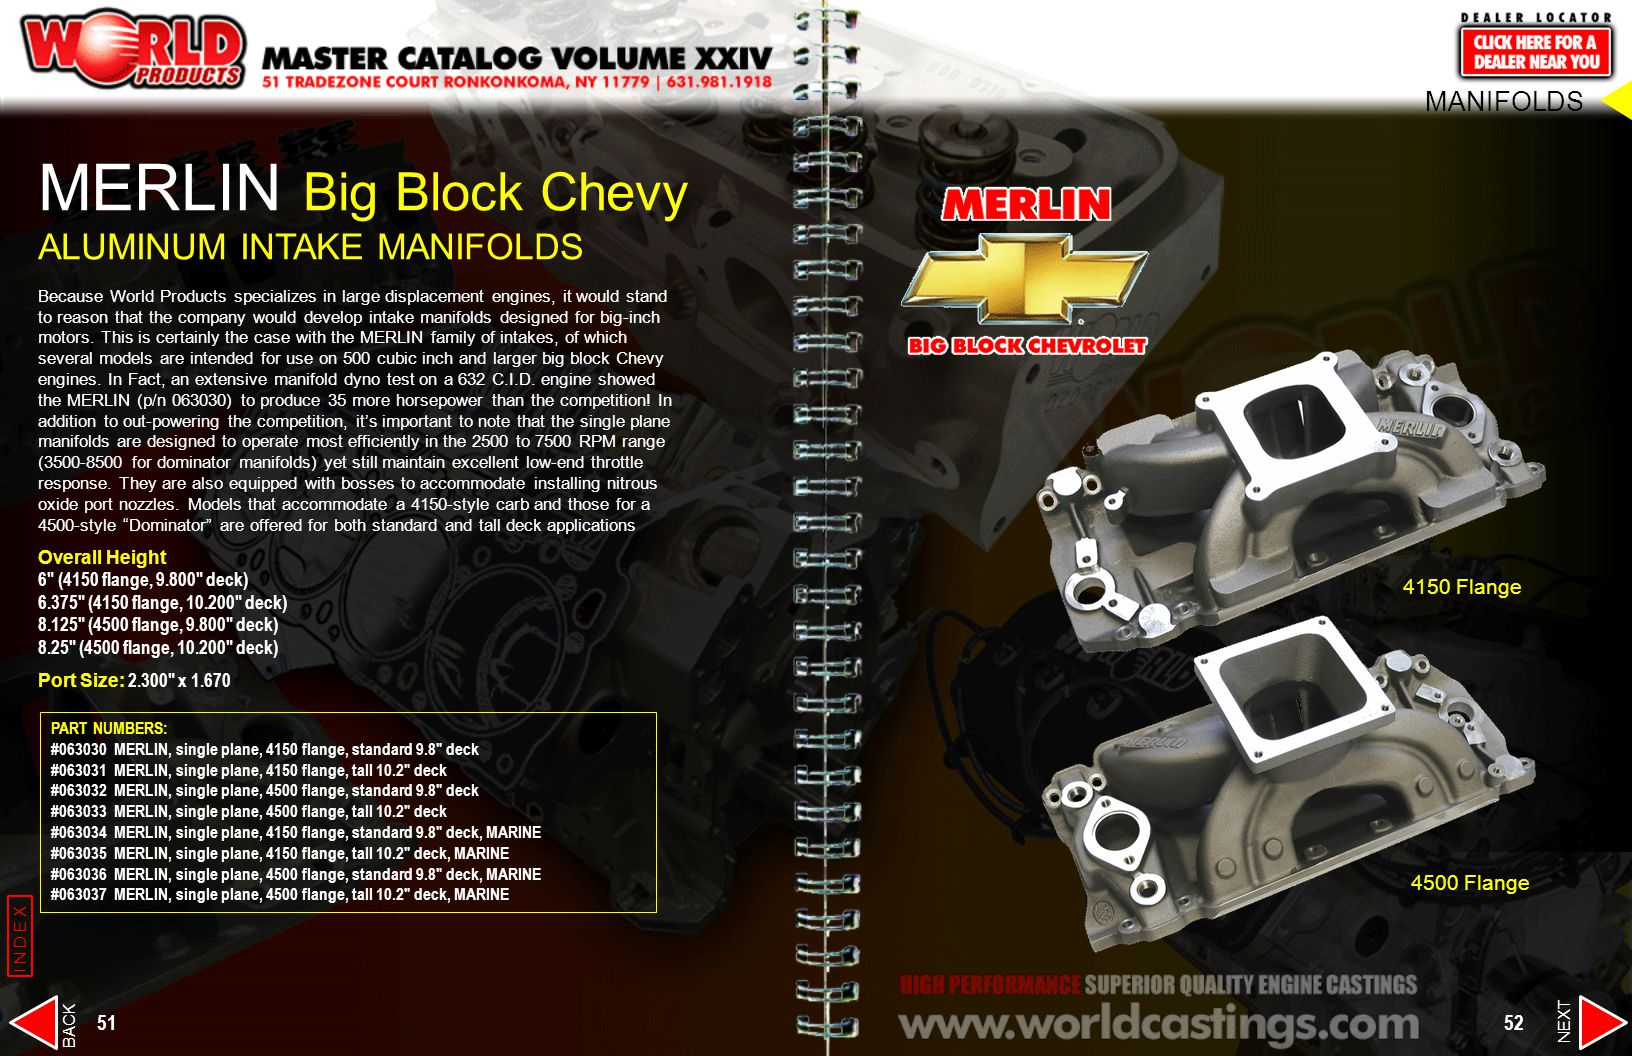 MERLIN Big Block Chevy ALUMINUM INTAKE MANIFOLDS 4500 Flange 4150 Flange Because World Products specializes in large displacement engines, it would st